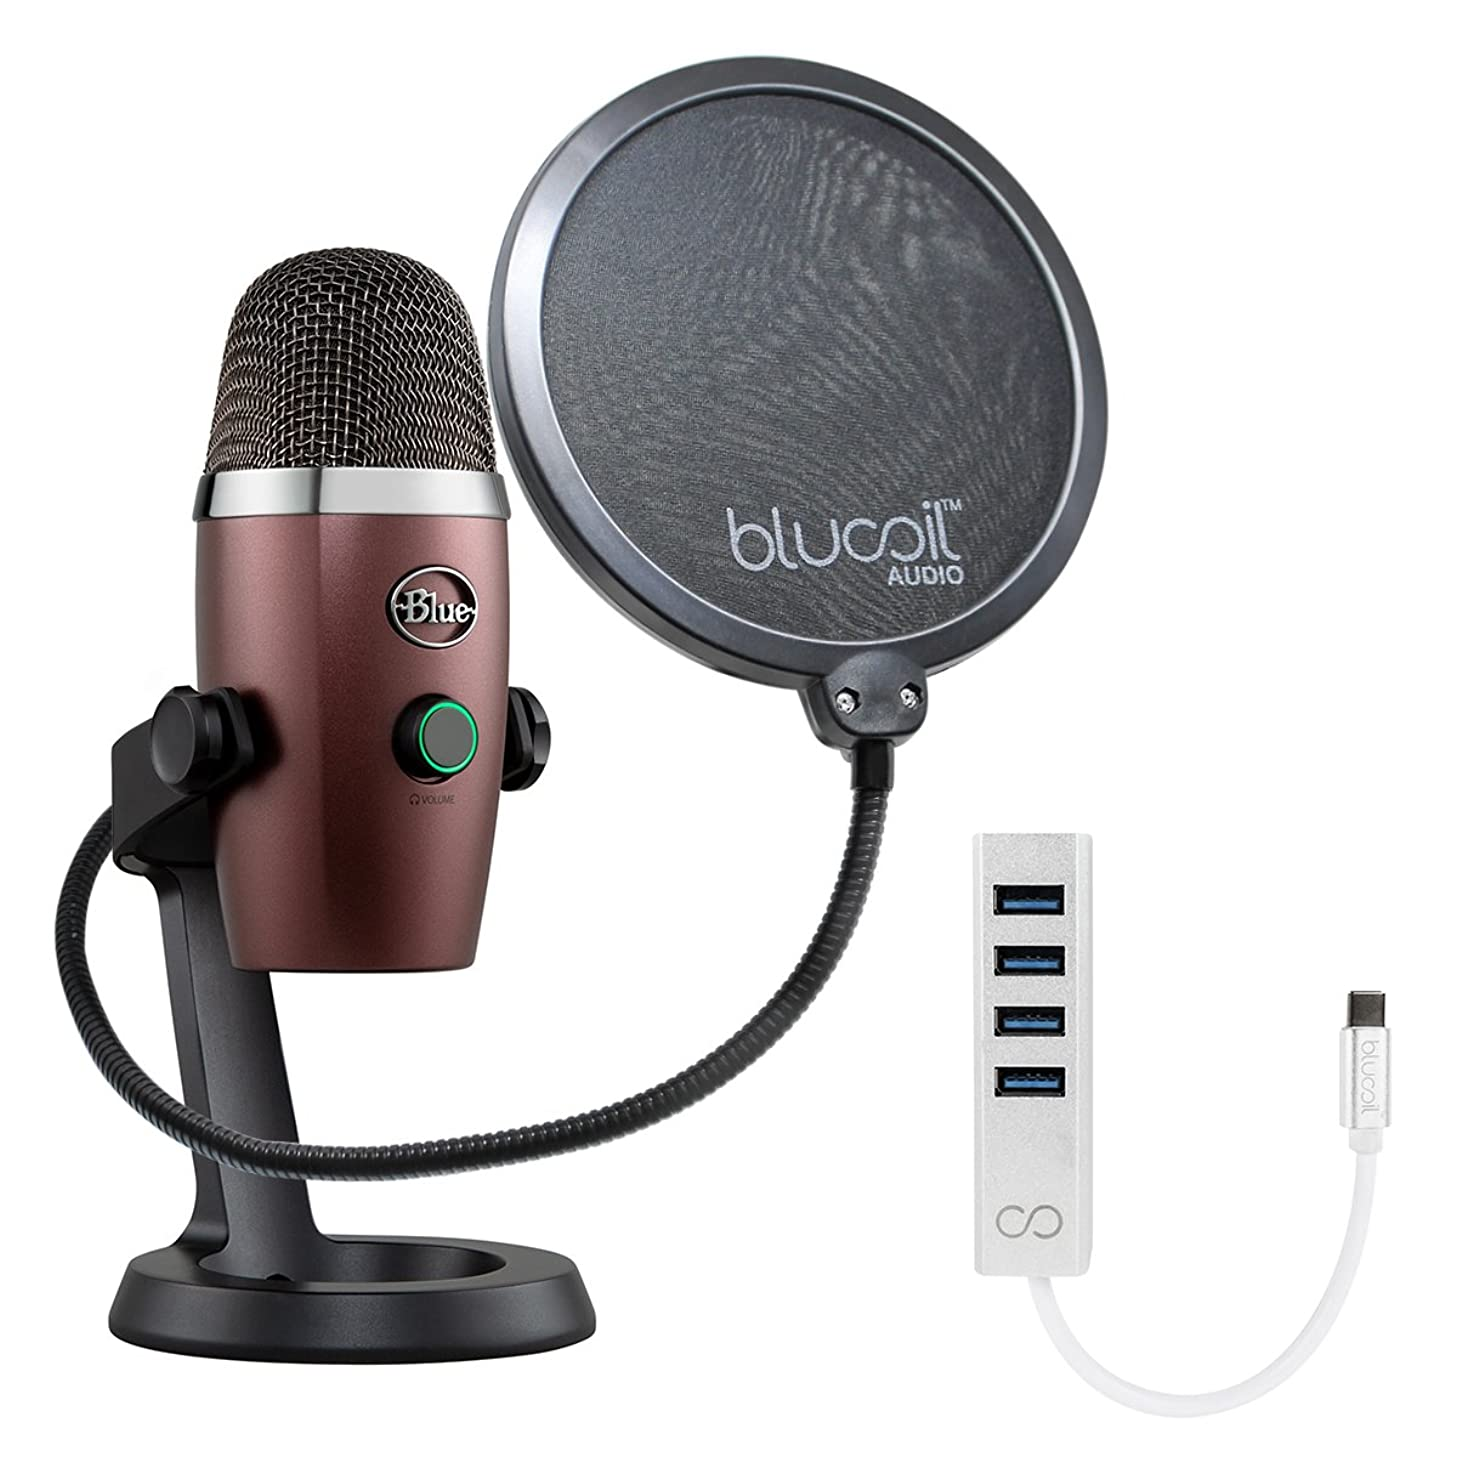 Blue Microphones Yeti Nano USB Mic for Podcasting, VoIP Conference (Red Onyx) Bundle with Blucoil Pop Filter Windscreen and USB C-Type Mini Hub with 4 USB Ports